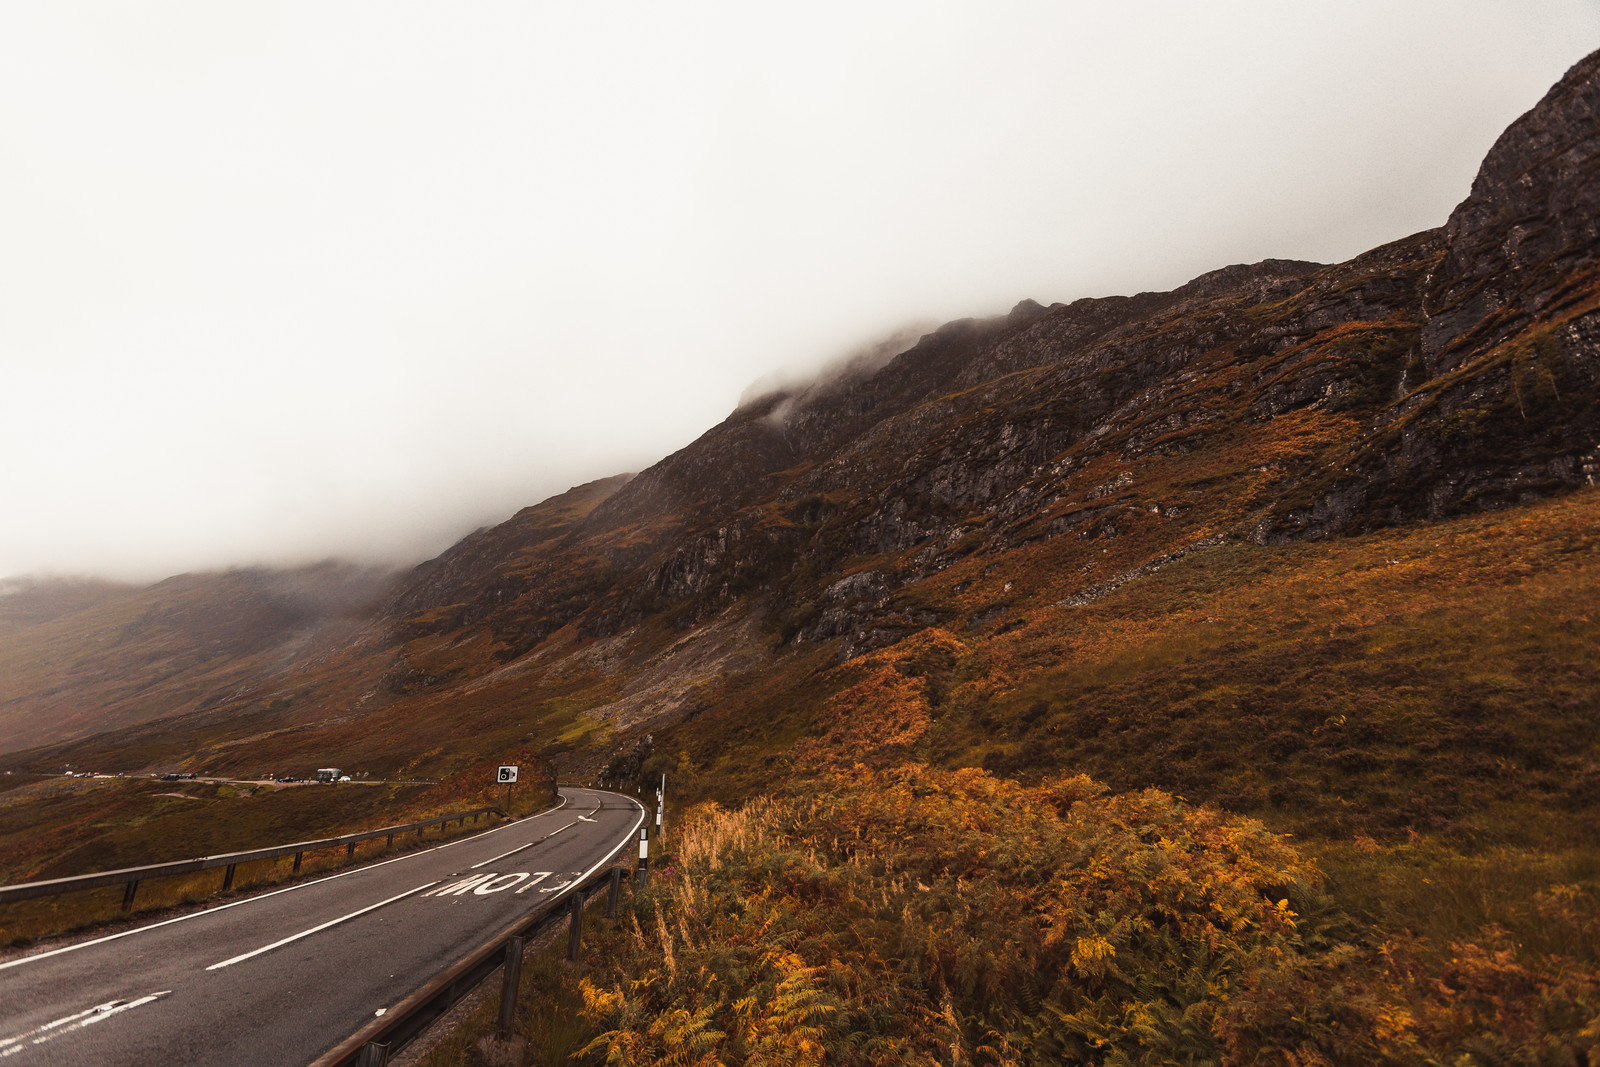 landscape-photography-in-scotland-glen-coe-19